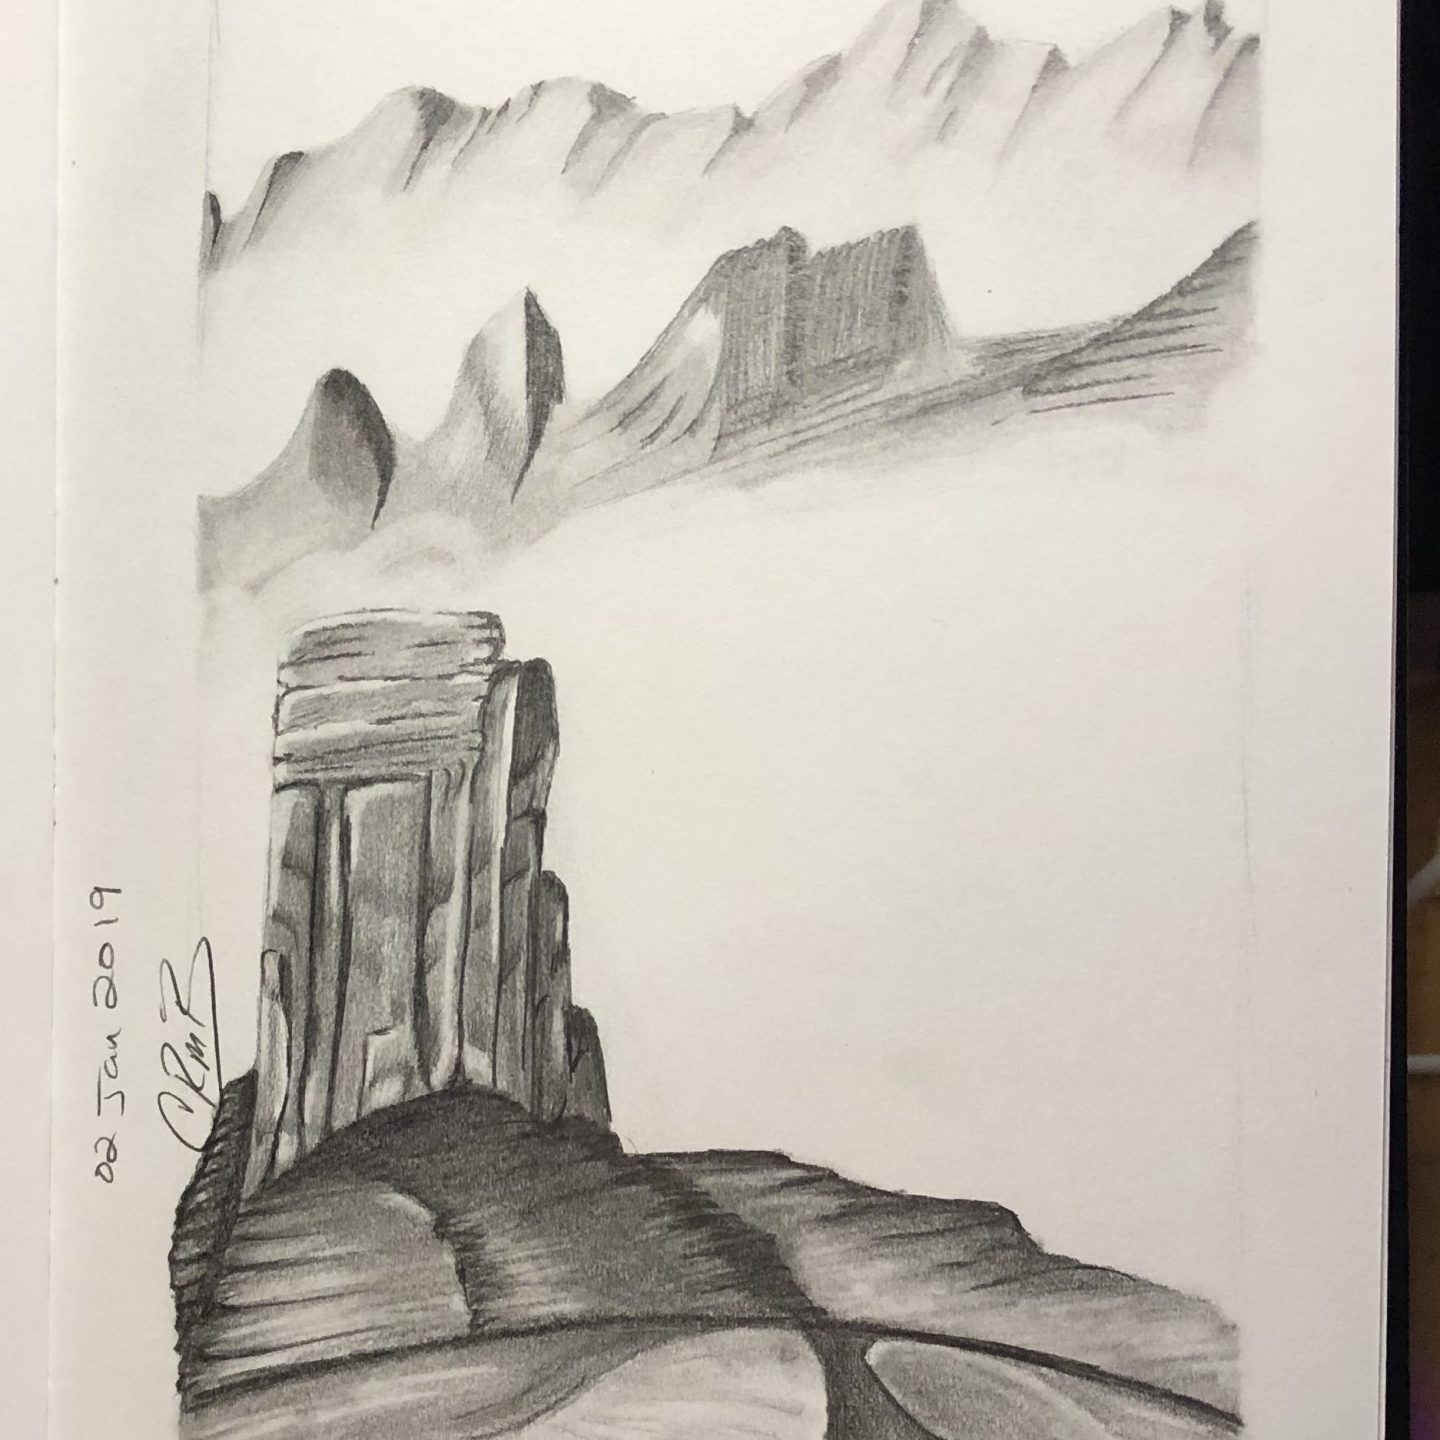 Sketches – Done